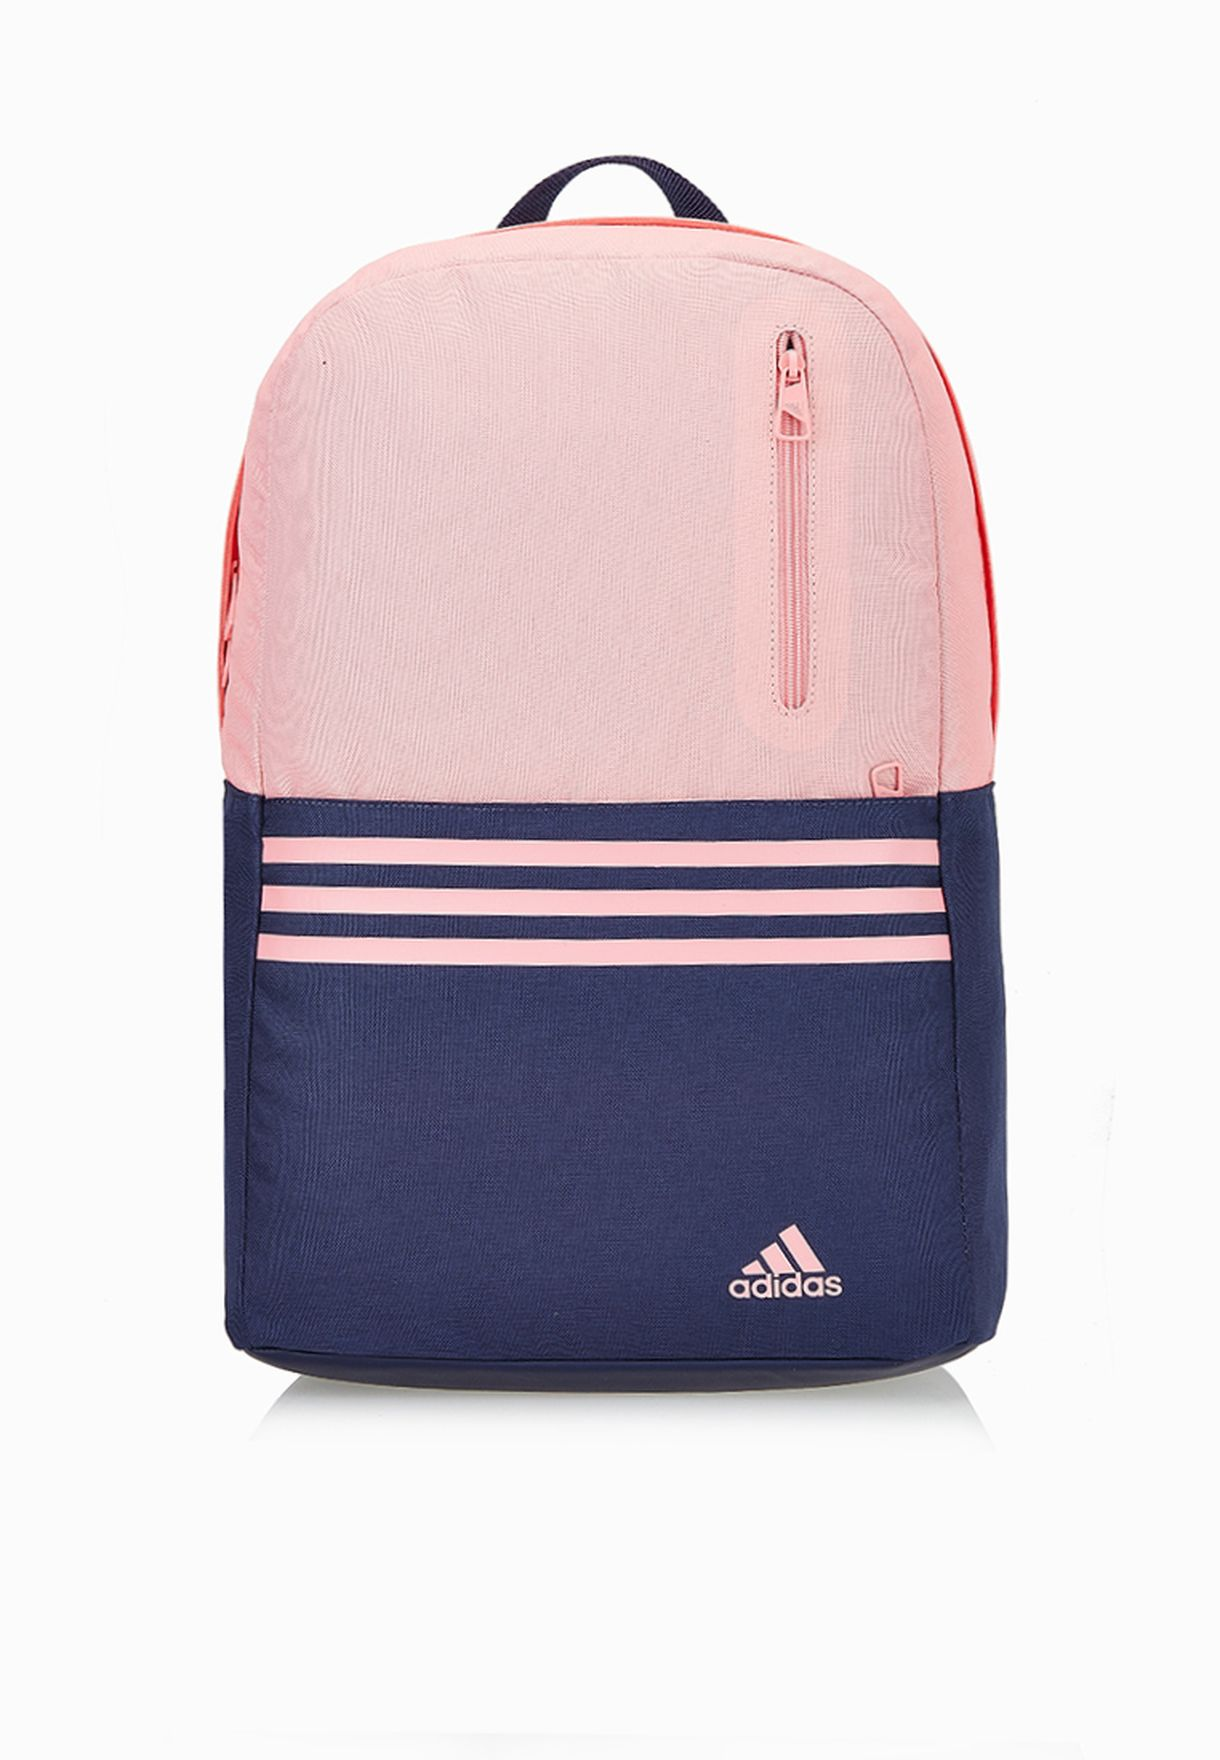 bdea7136b1b Shop adidas pink Versatile 3S Backpack AB1882 for Women in UAE ...